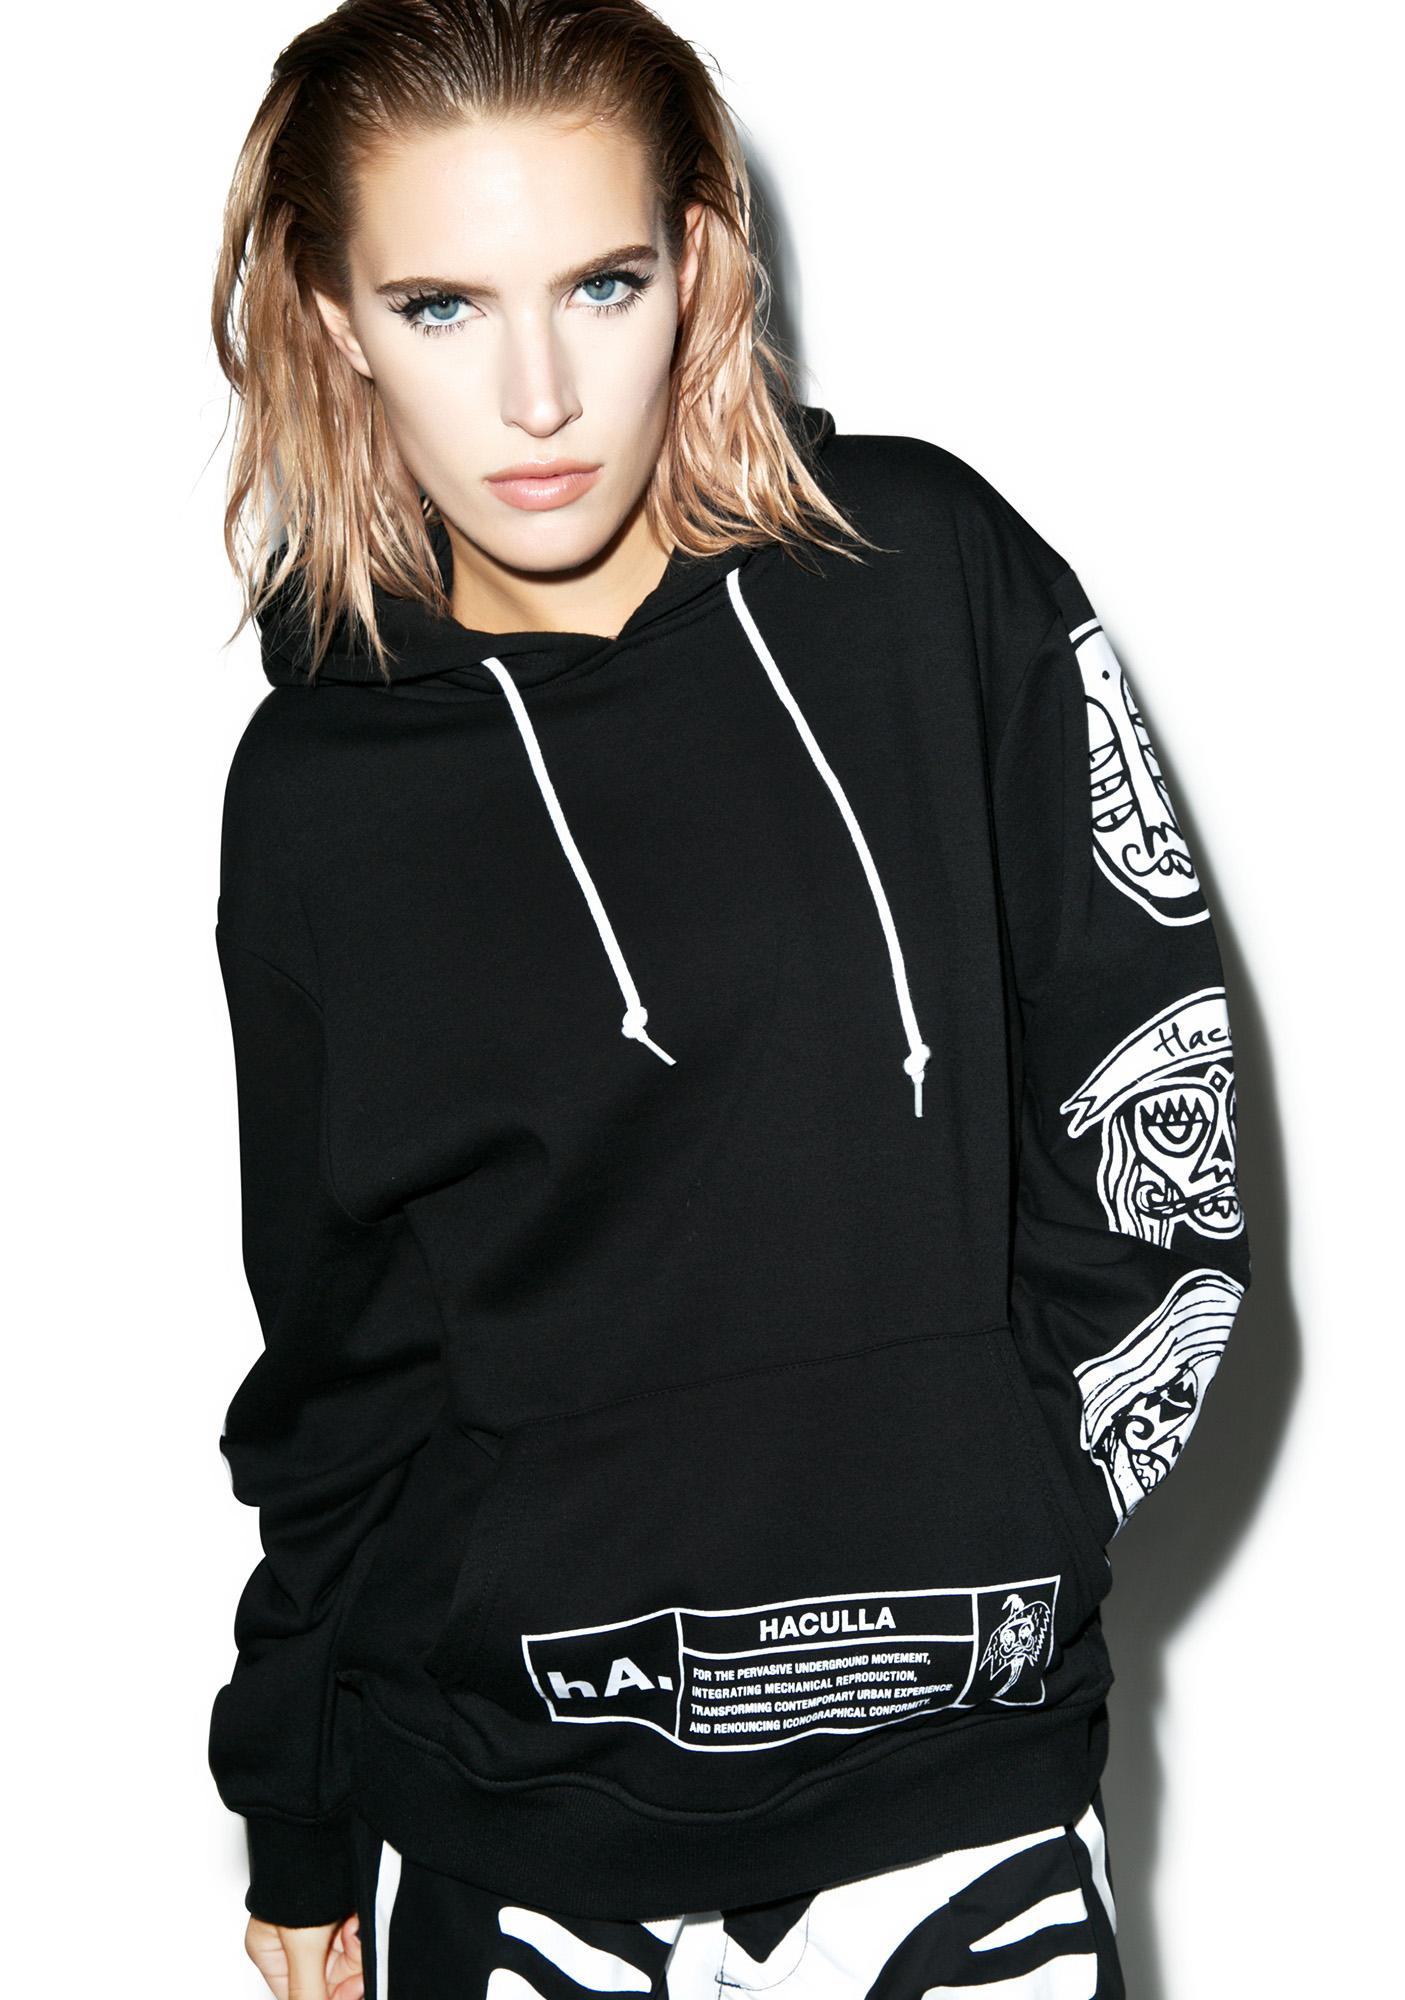 Haculla NYC Pullover Hoodie